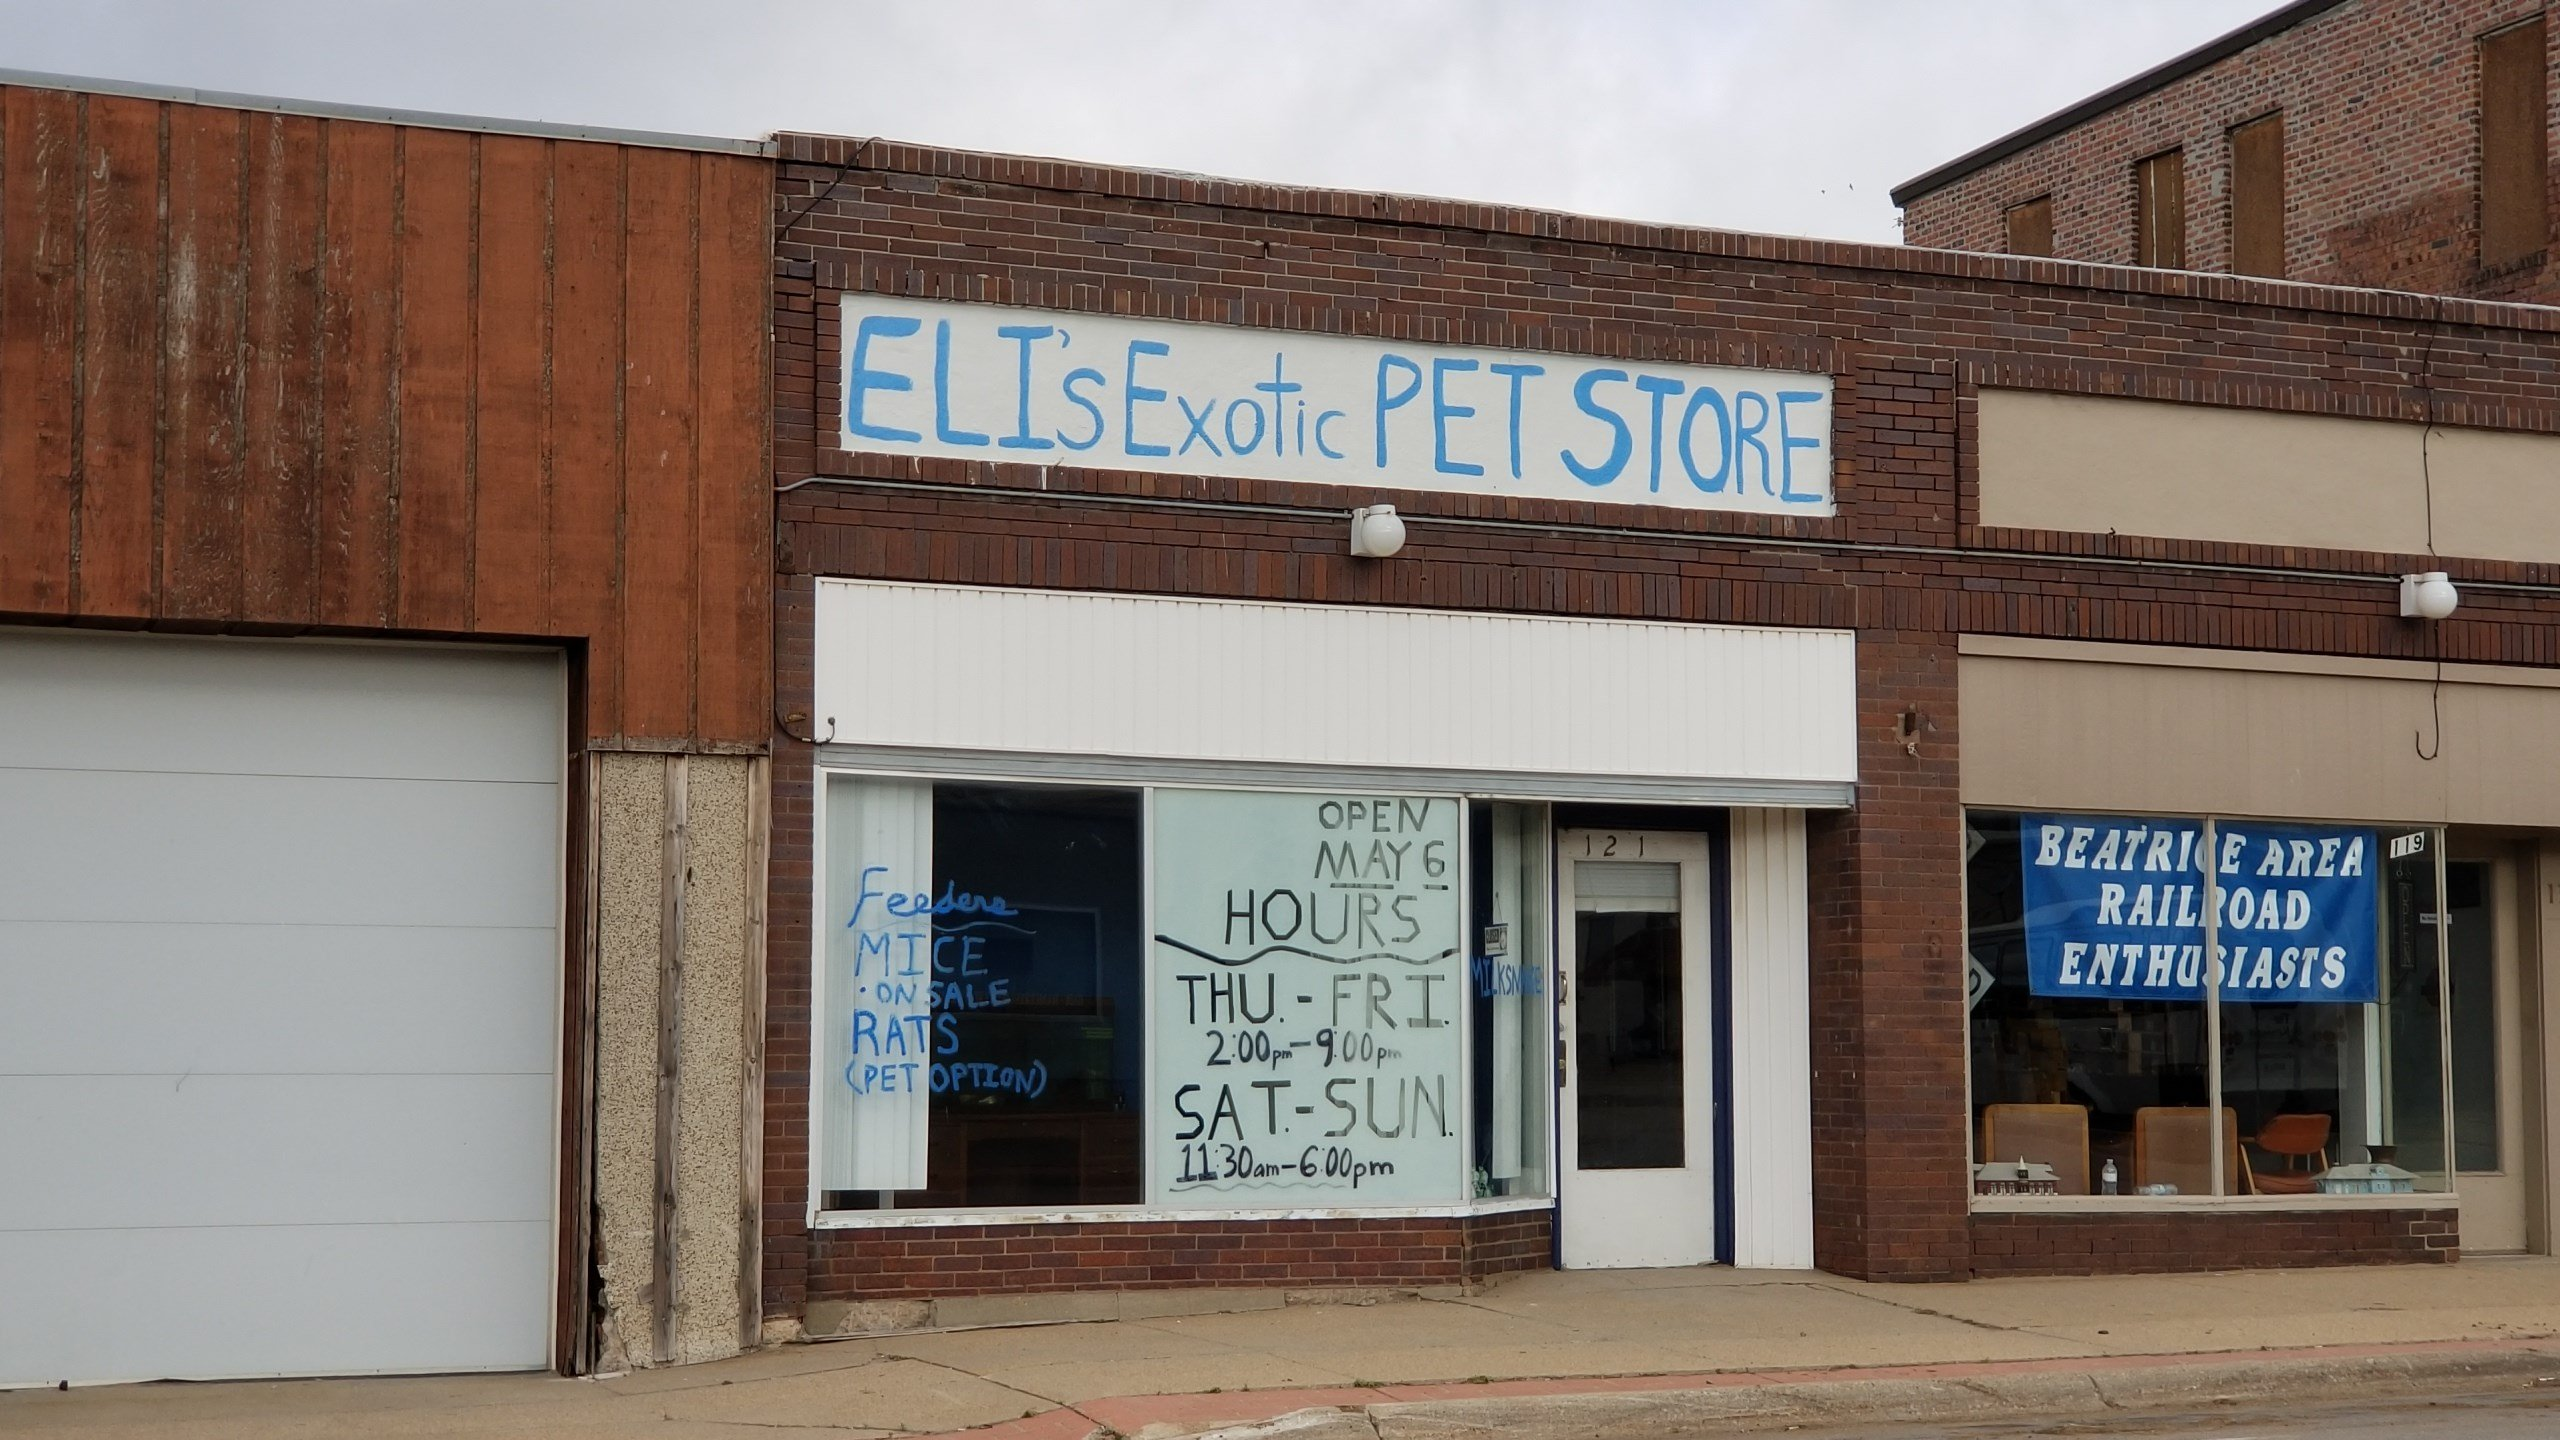 Exotic pet store owner desiring to meet city code on animals